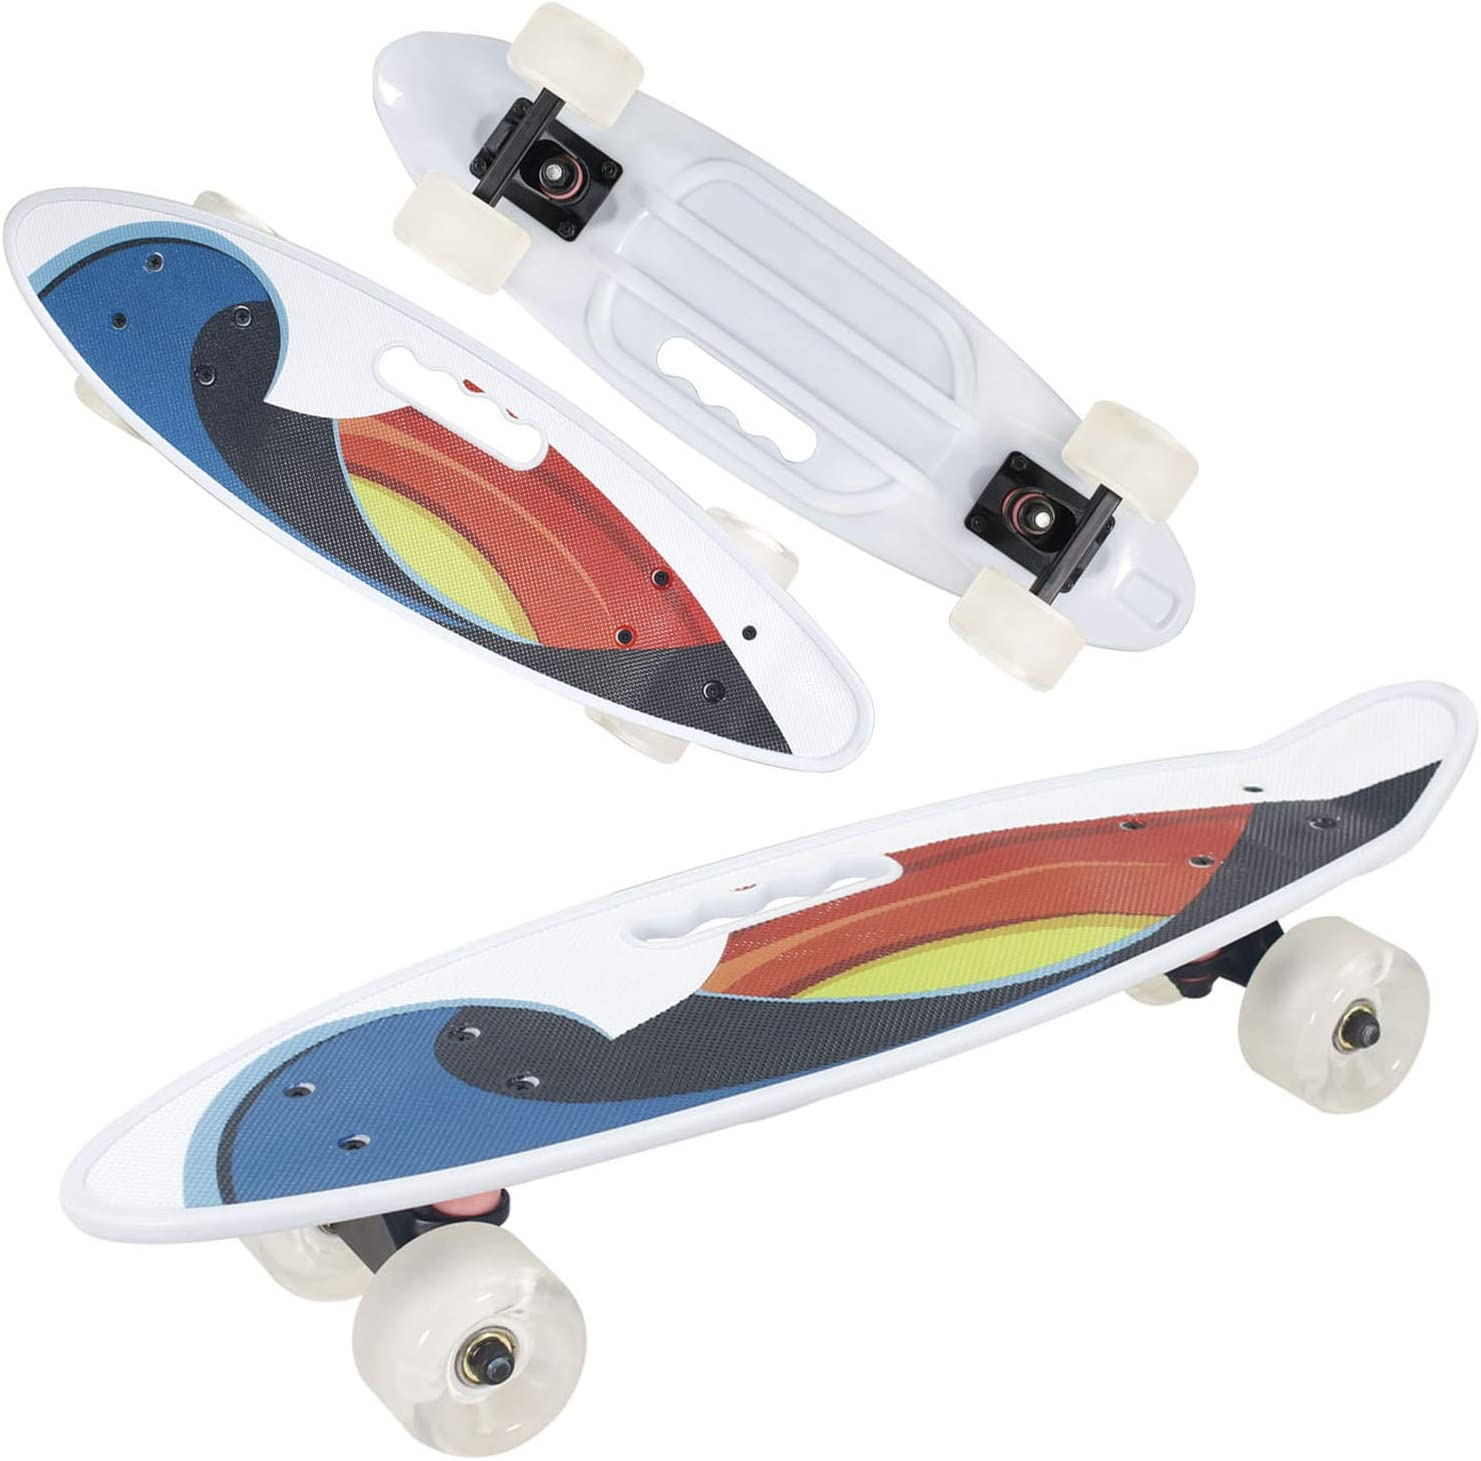 Geelife 24 Complete Mini Cruiser Skateboard for Beginners Youths Teens Girls Boys with LED Wheels